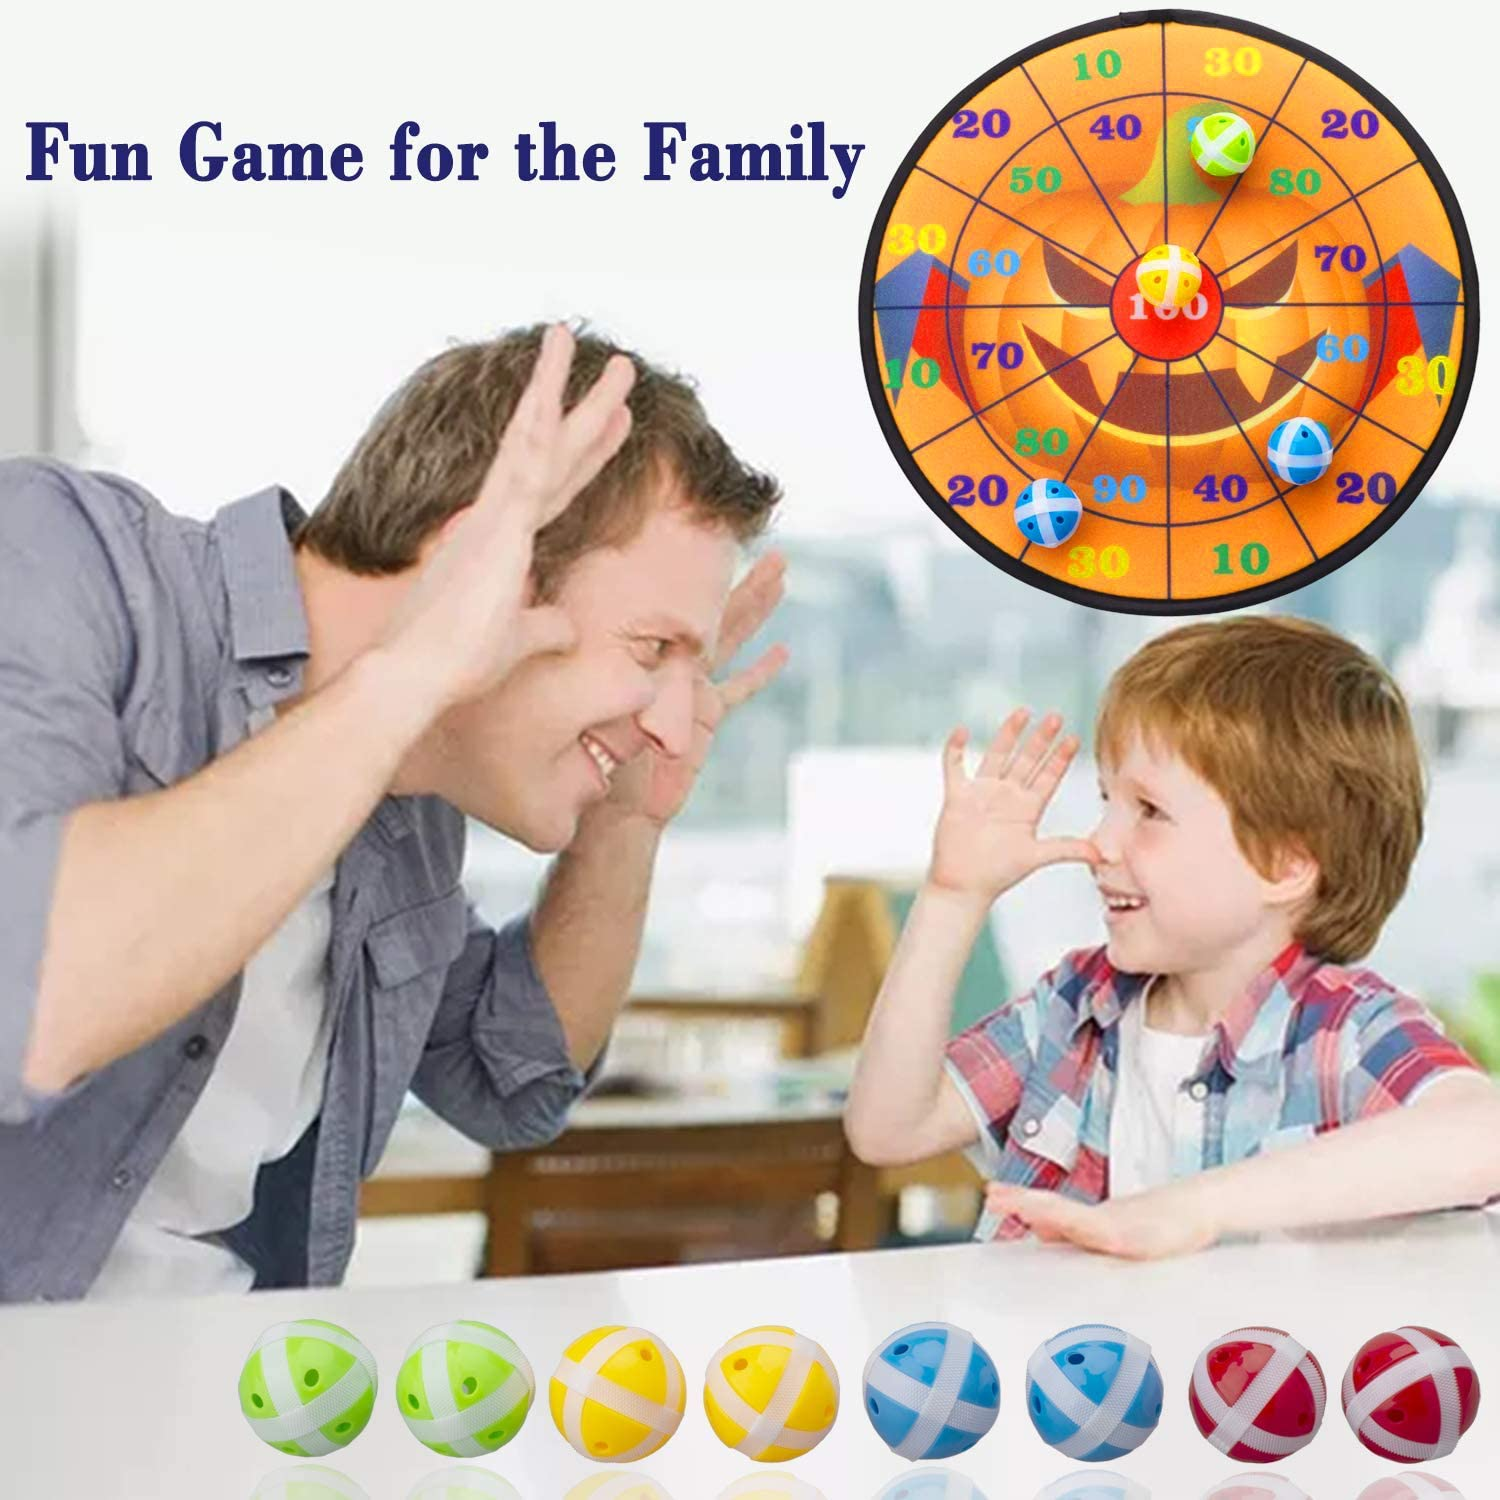 Kyerivs Dart Board Game Set for Kids Halloween Theme Dartboard with Hook and 8 Sticky Balls Family Fun Best Toy Gift for Boys and Girls Indoor Outdoor Interactive Games Diameter 14 Inch : Sports & Outdoors